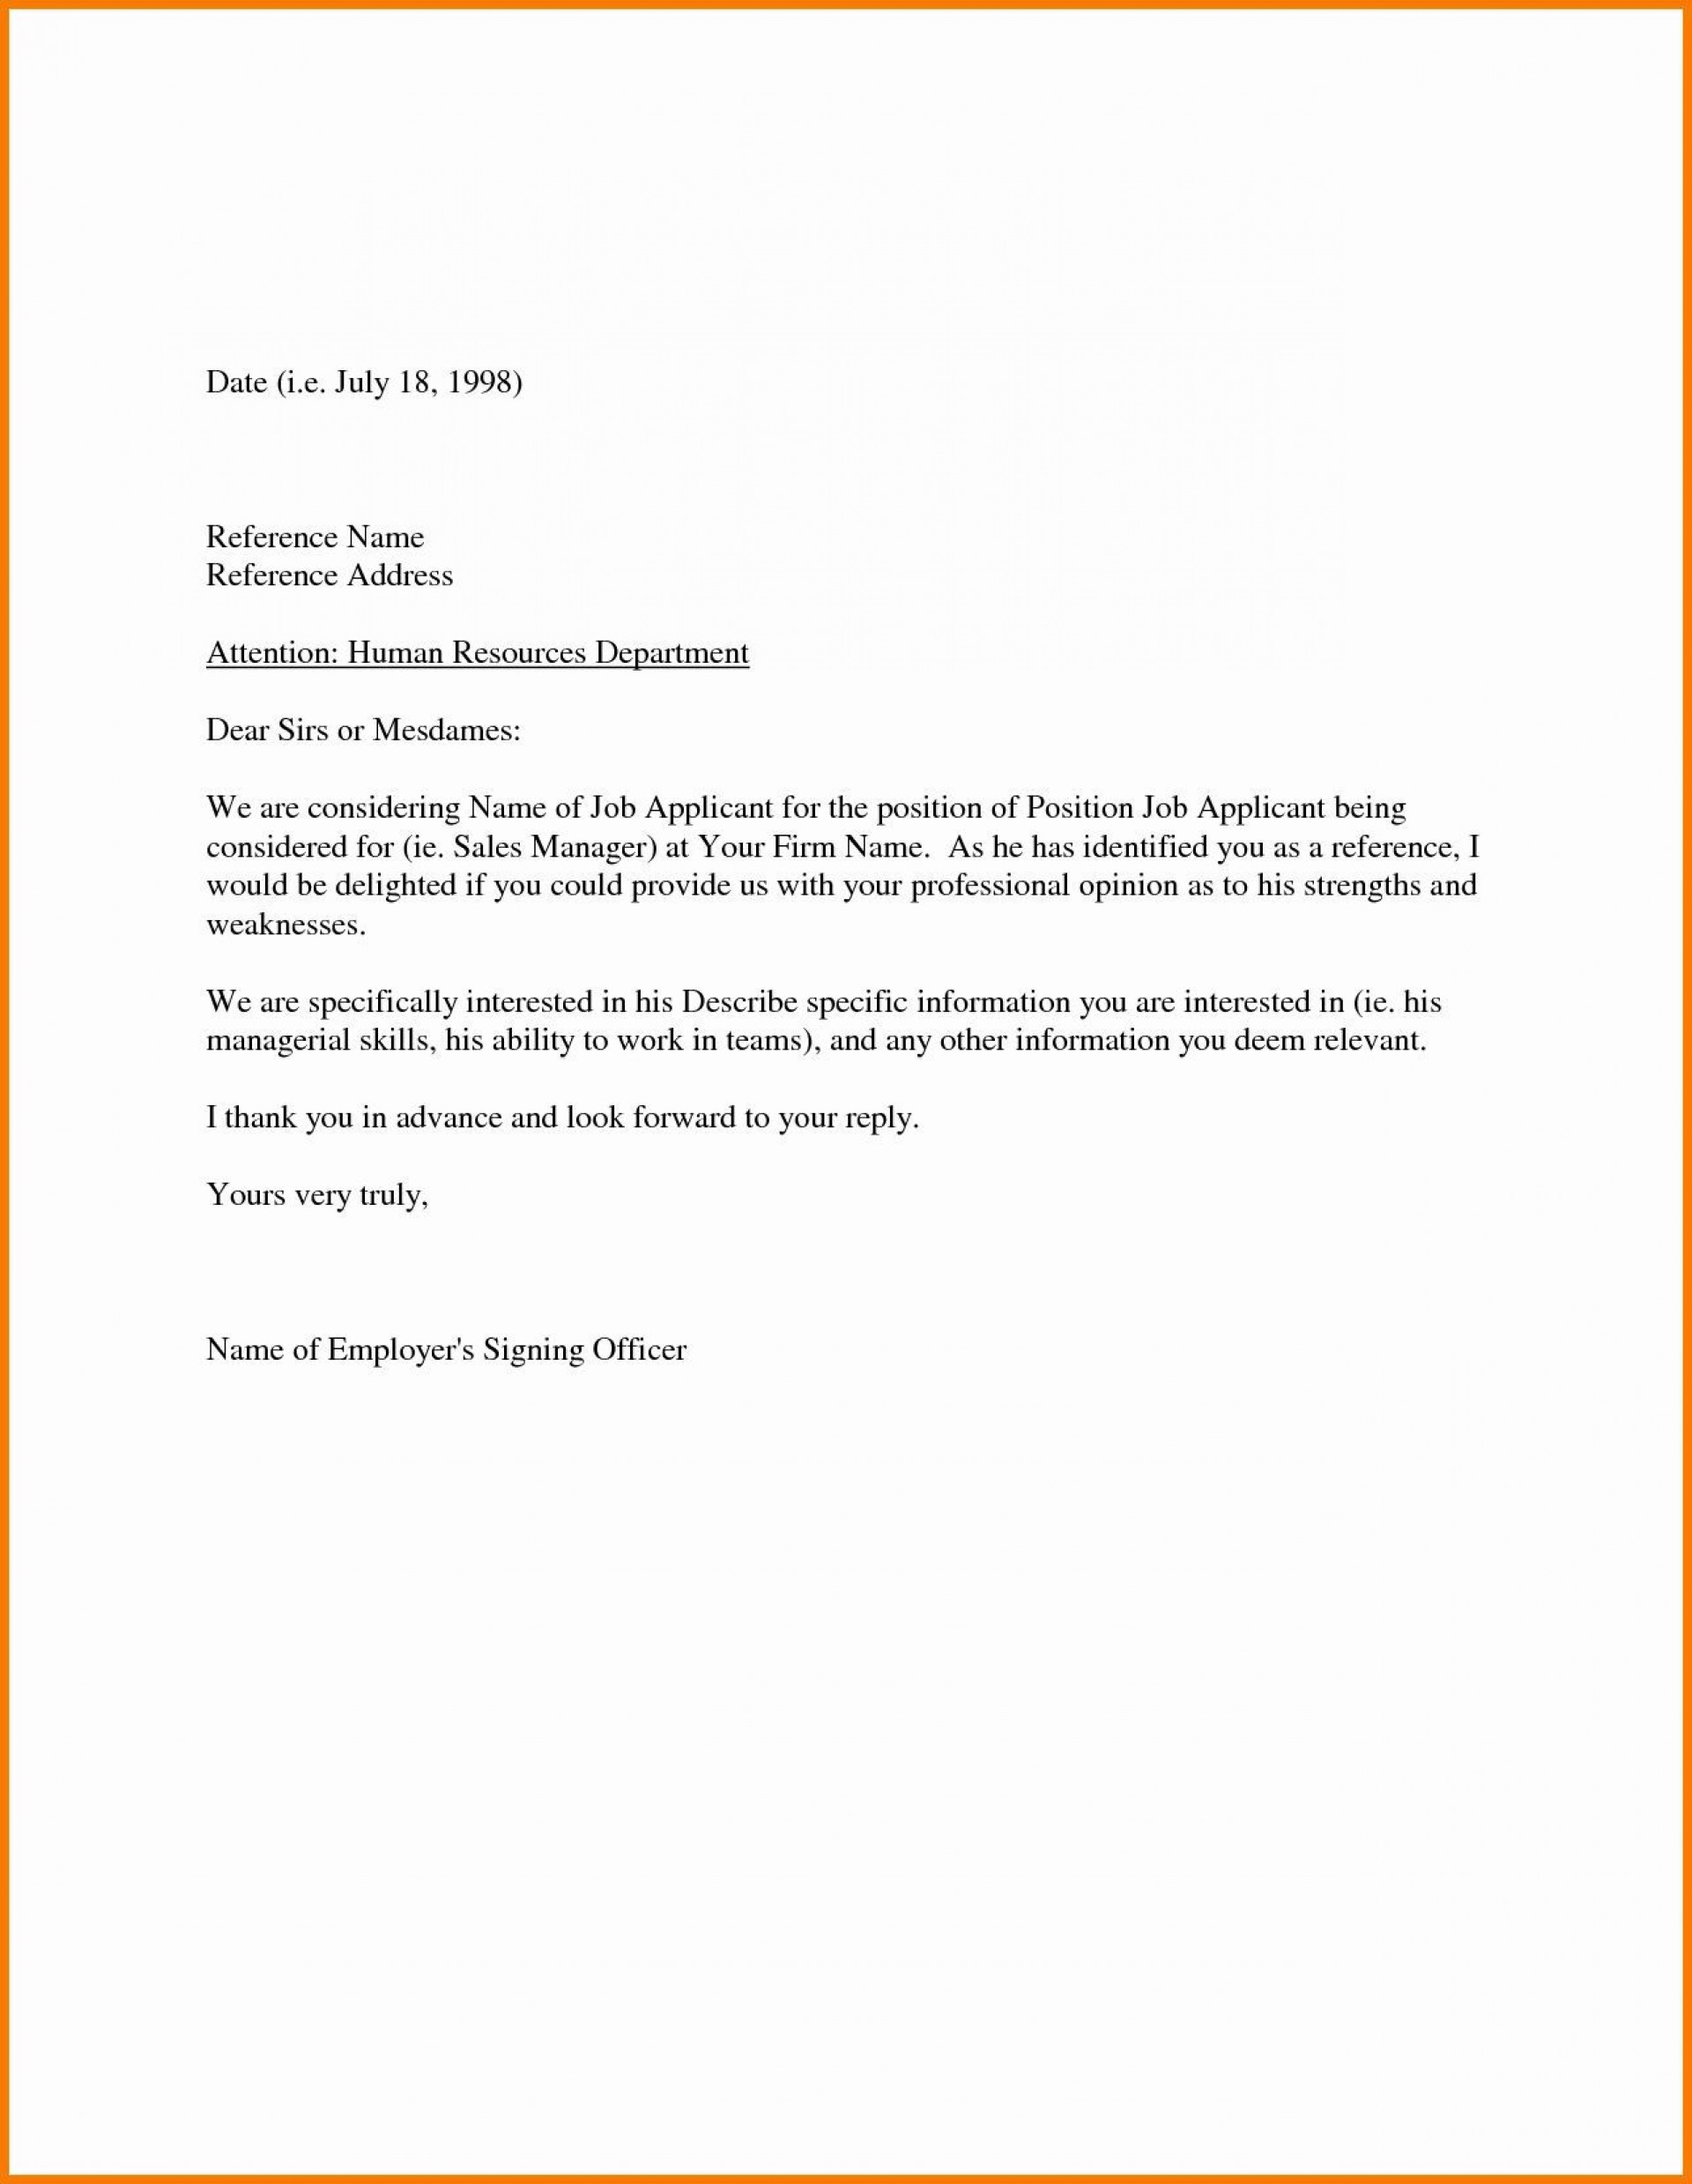 000 Rare Letter Of Recommendation Template Word Image  General Free Doc1920